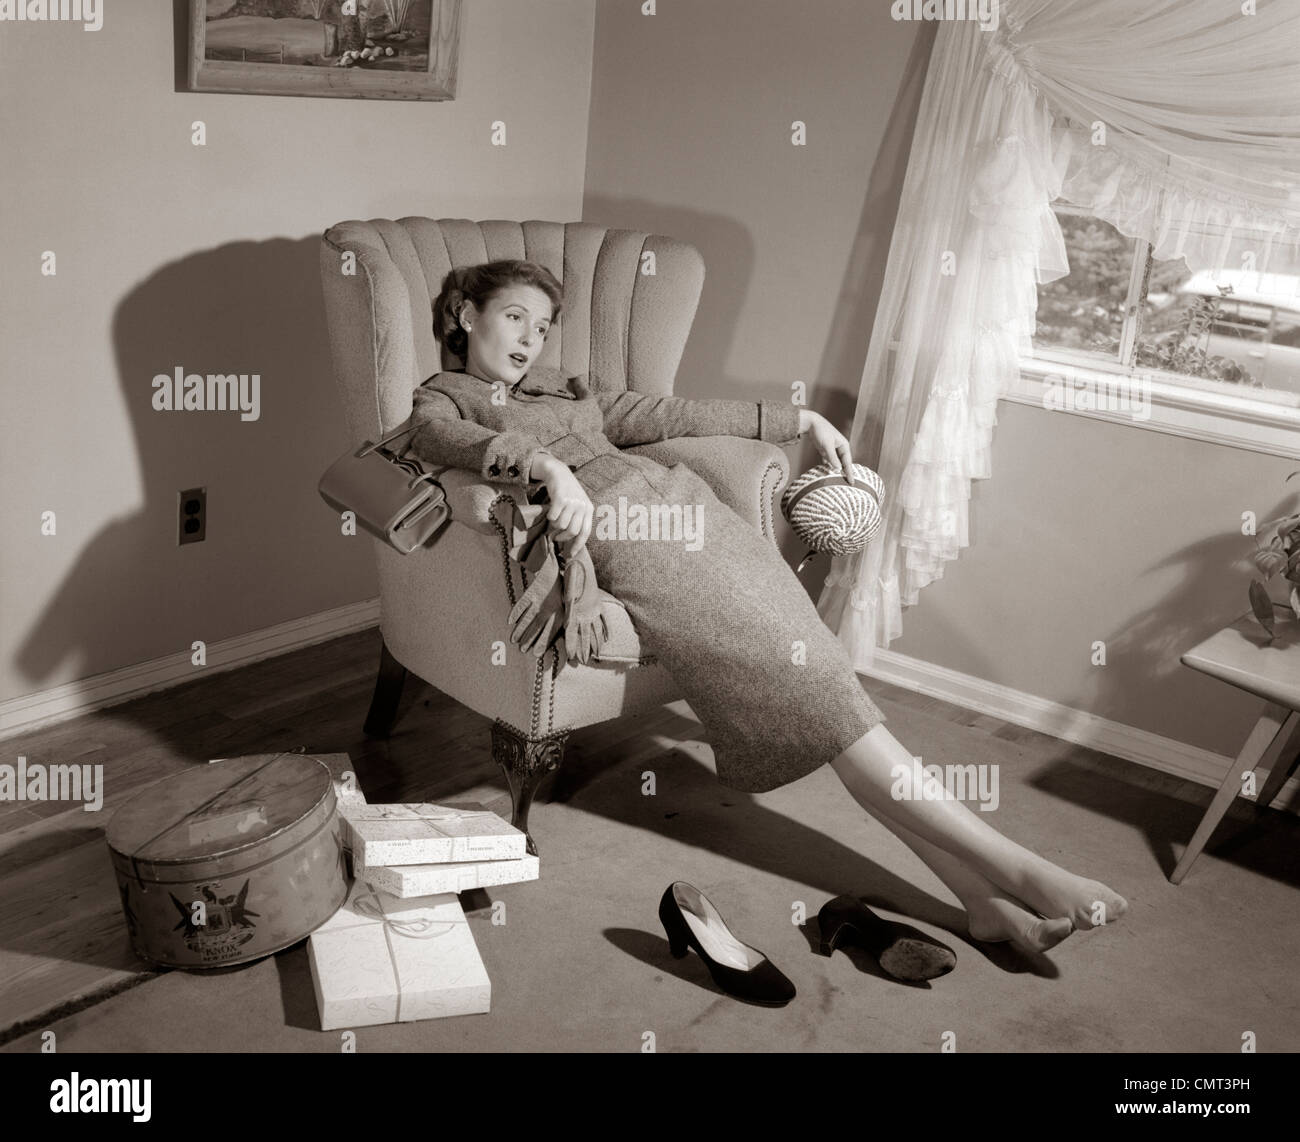 1950s Exhausted Female Slumped In Chair With Shoes Off